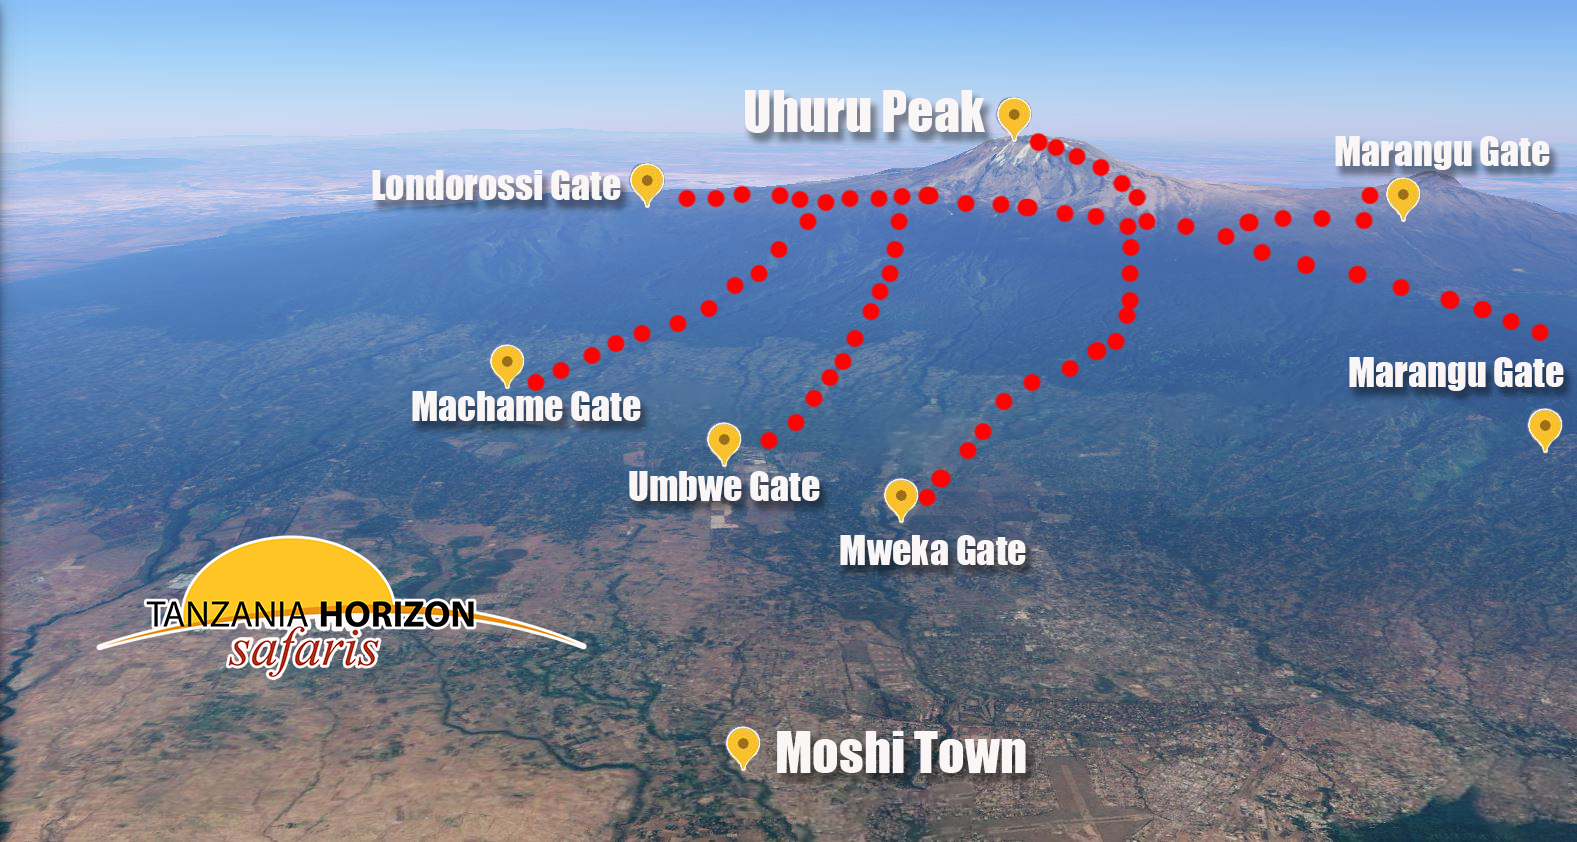 Kilimanjaro with Moshi Town in the front / by GOOGLE